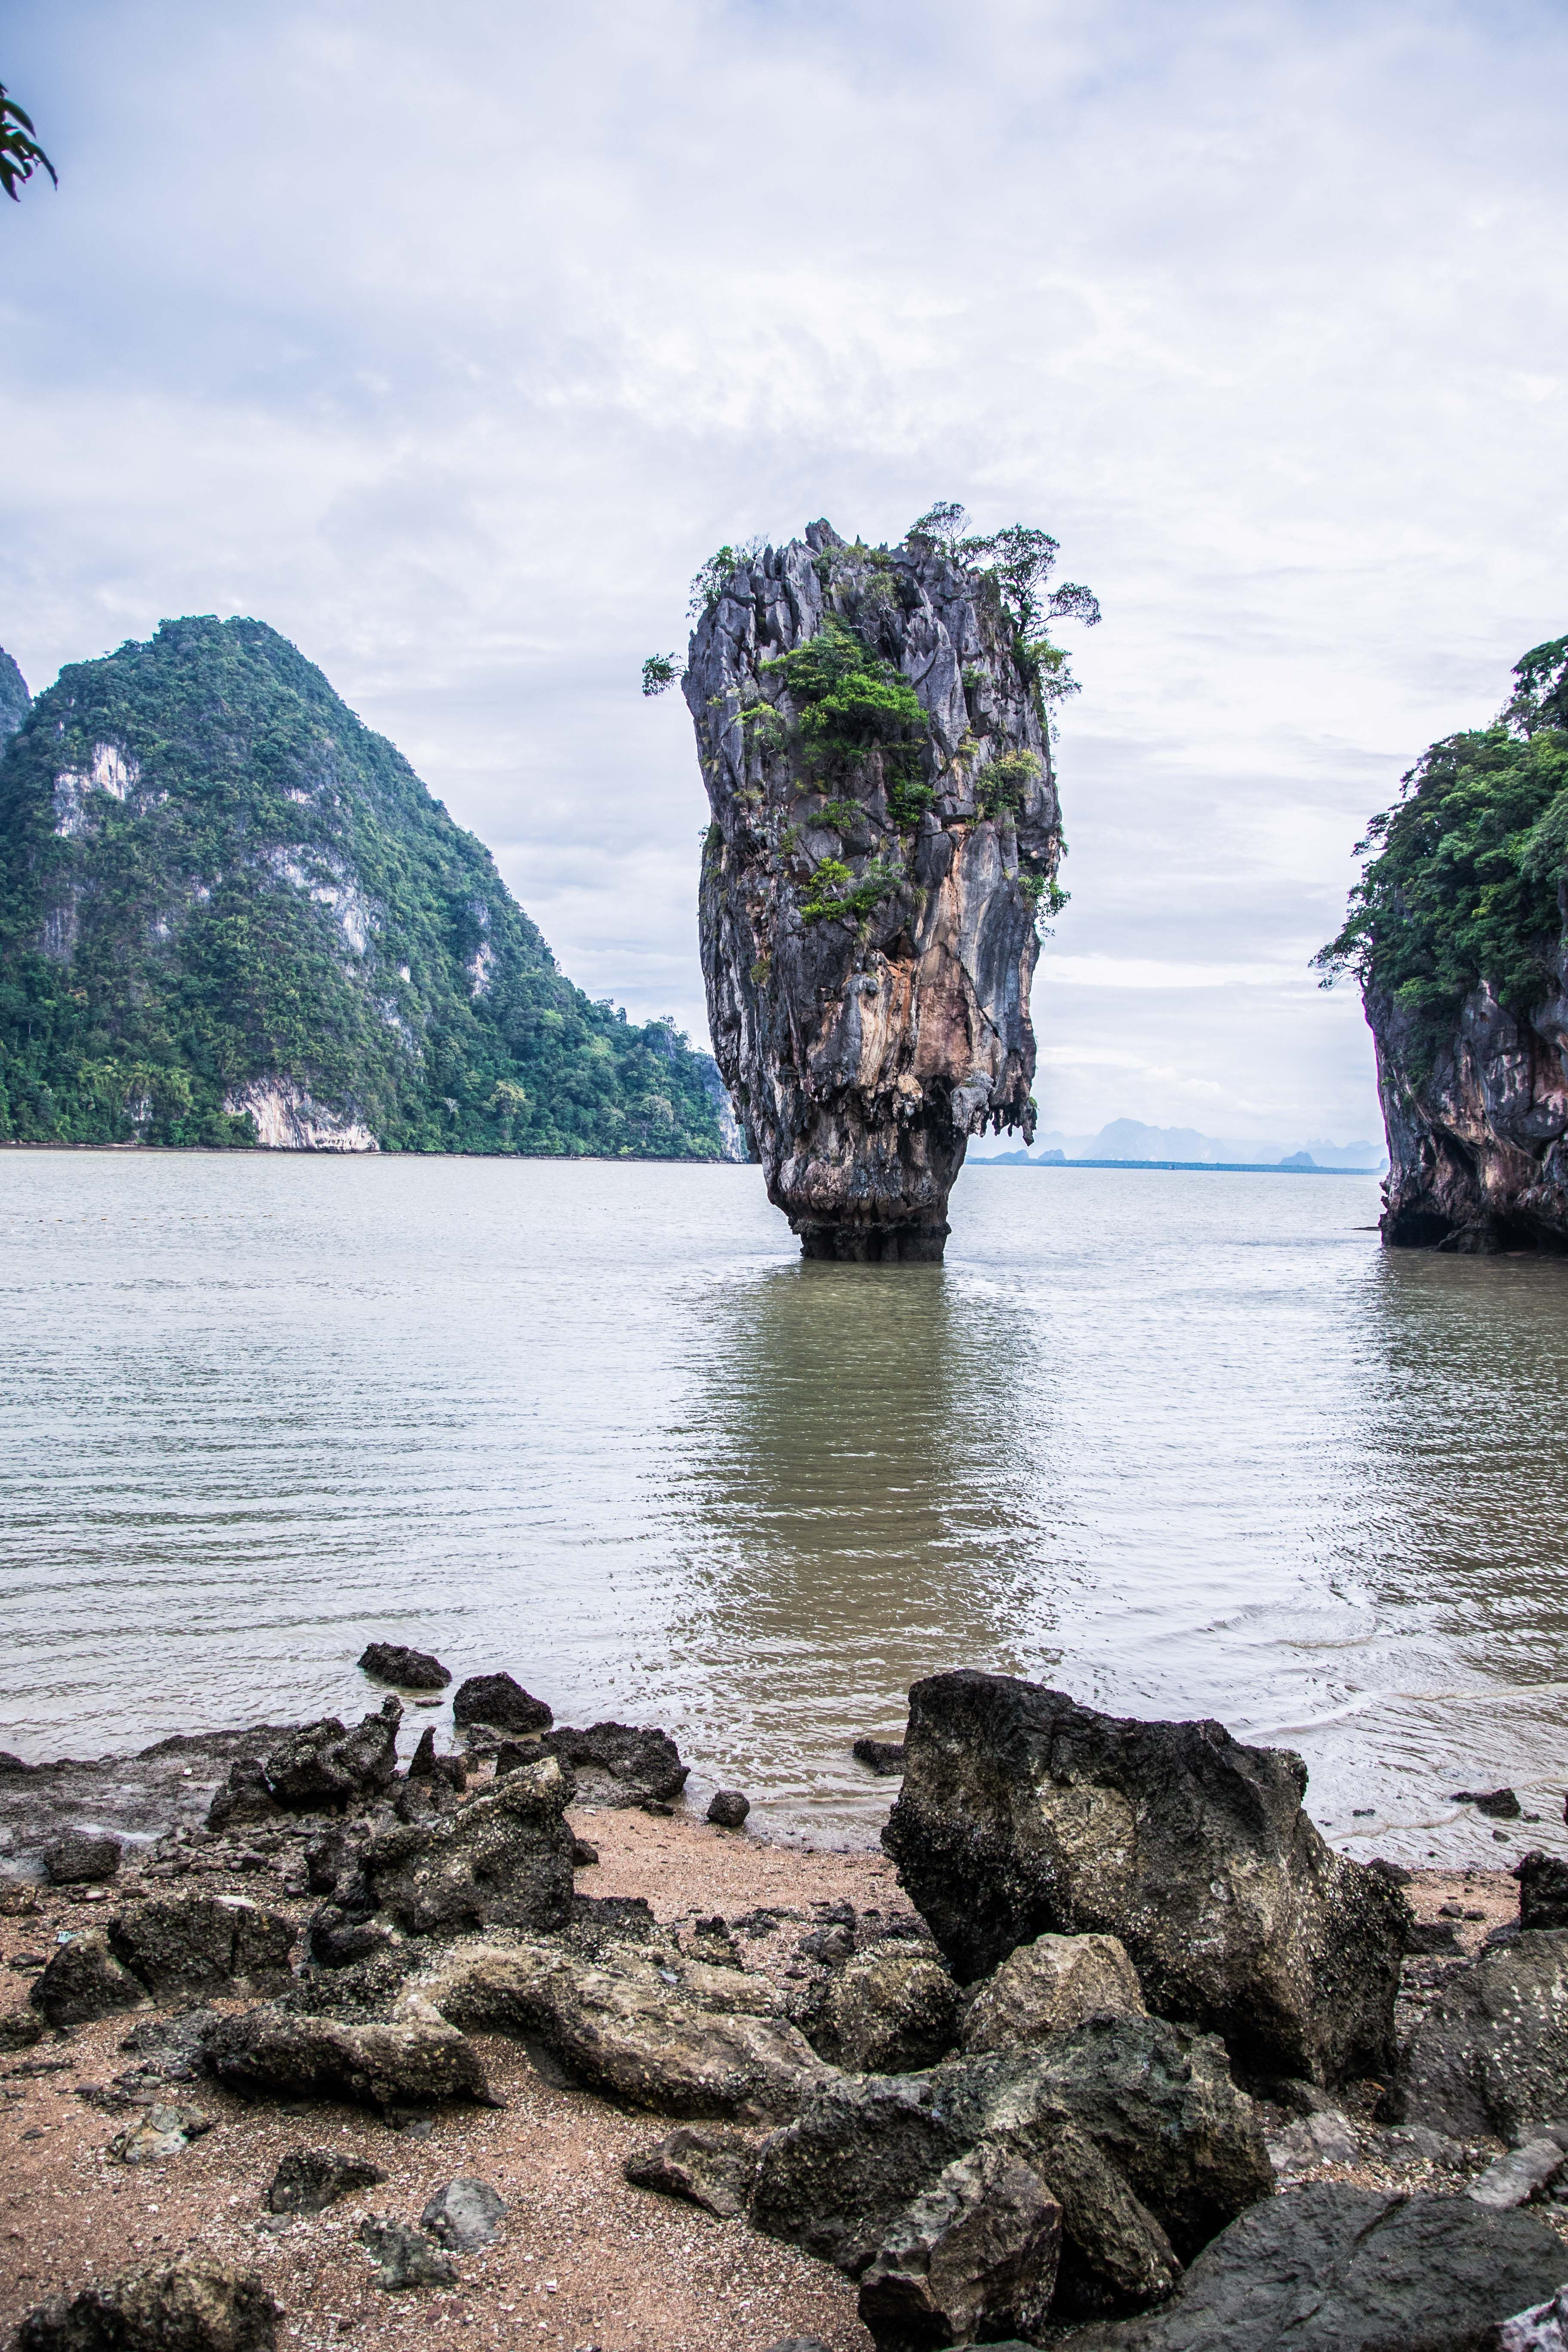 james bond island koh phing kan